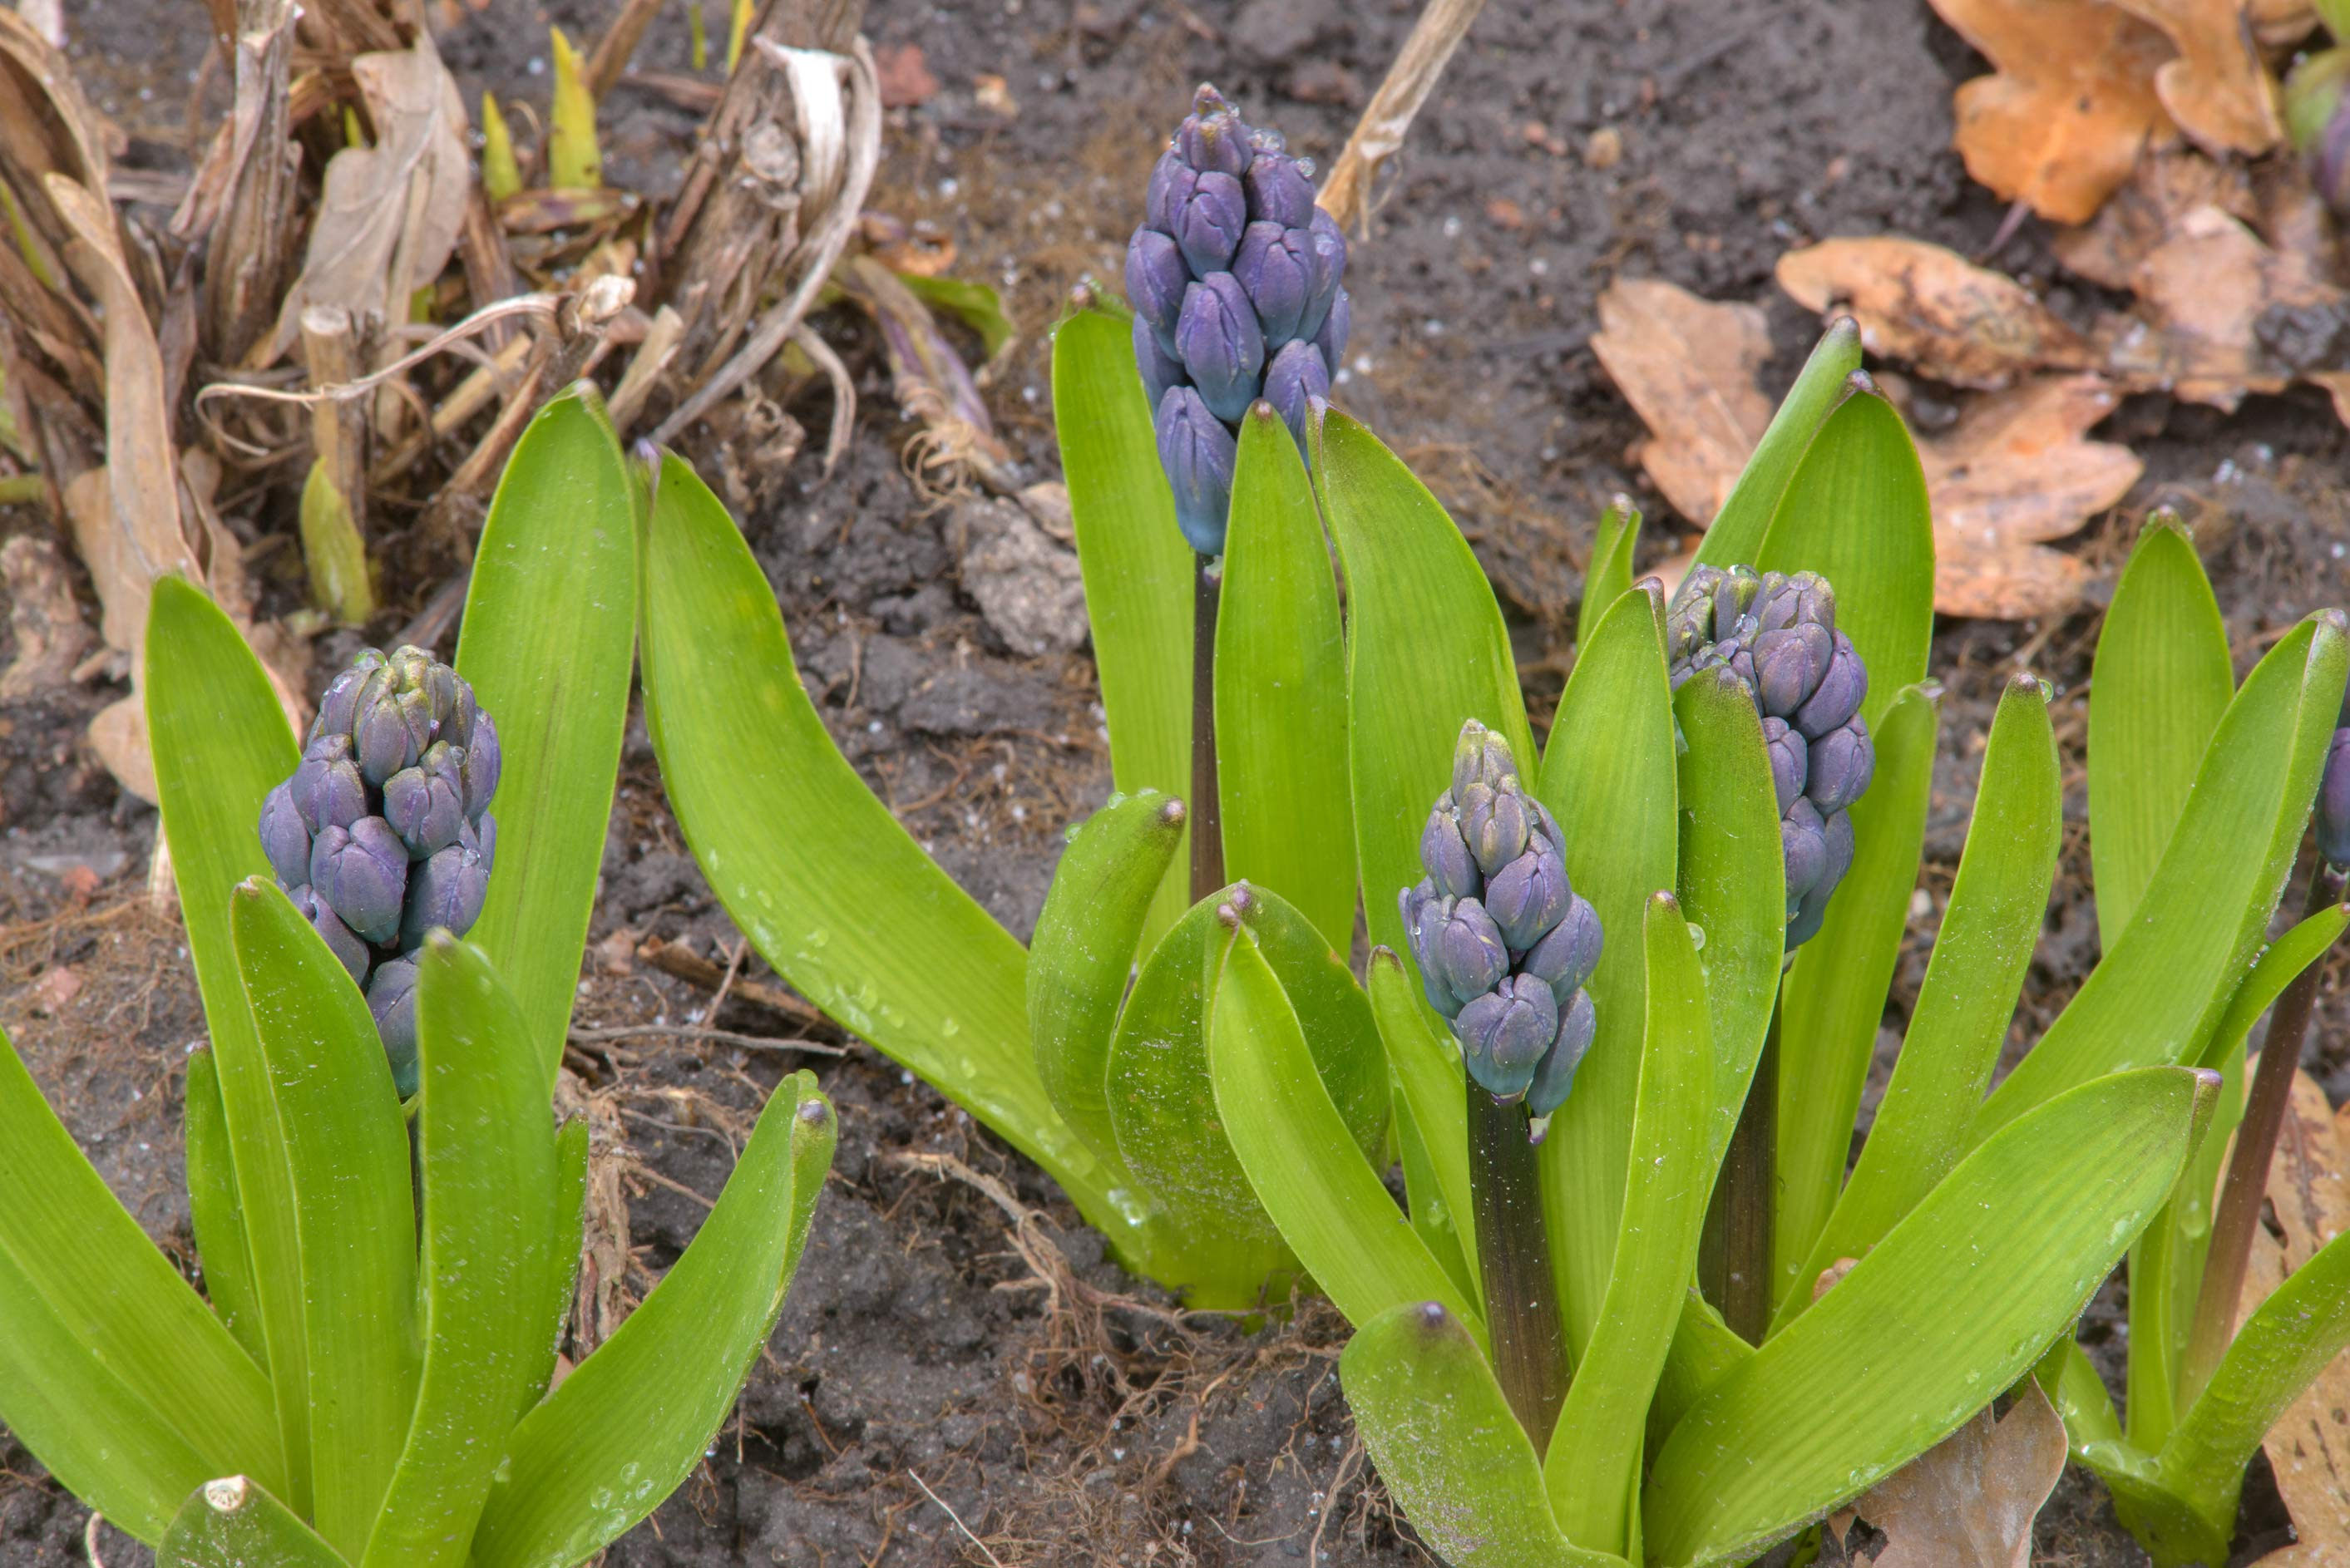 Blue hyacinths in Botanic Gardens of Komarov Botanical Institute. St.Petersburg, Russia